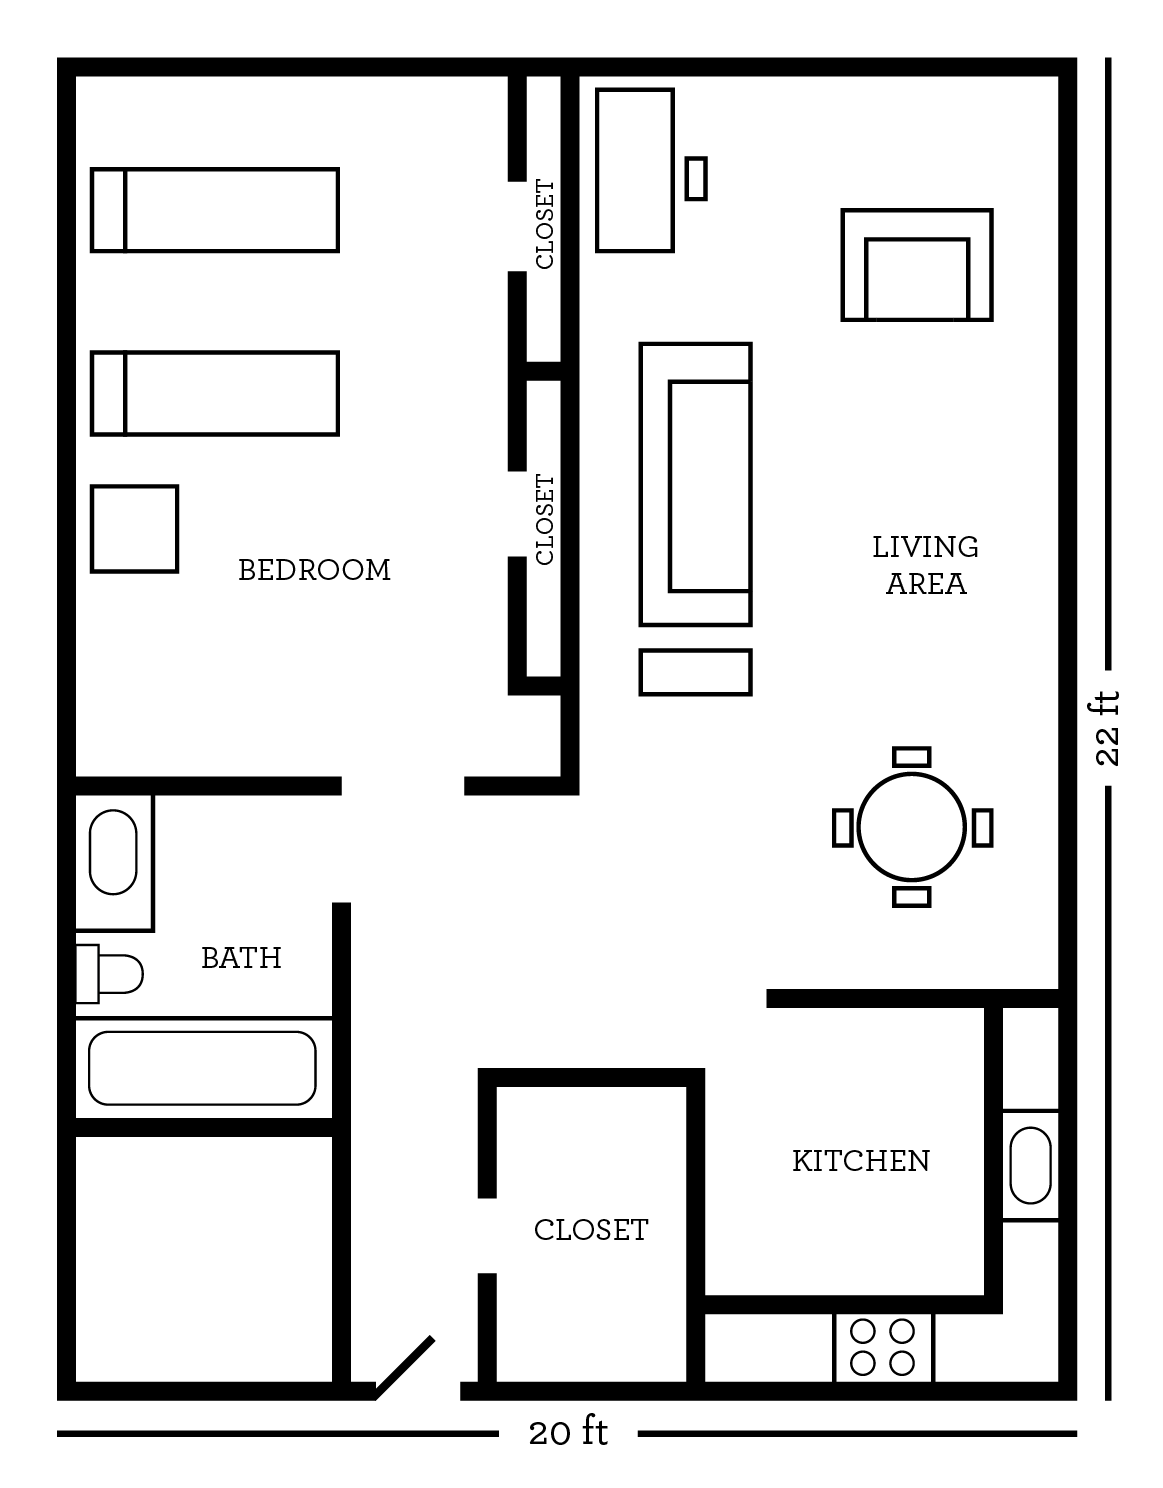 Building Floor Plans also House Floor Plans furthermore Floor Plans additionally Princess Carriage Bed moreover Craftsman Cottage House Plan. on bedroom floor plans dimensions